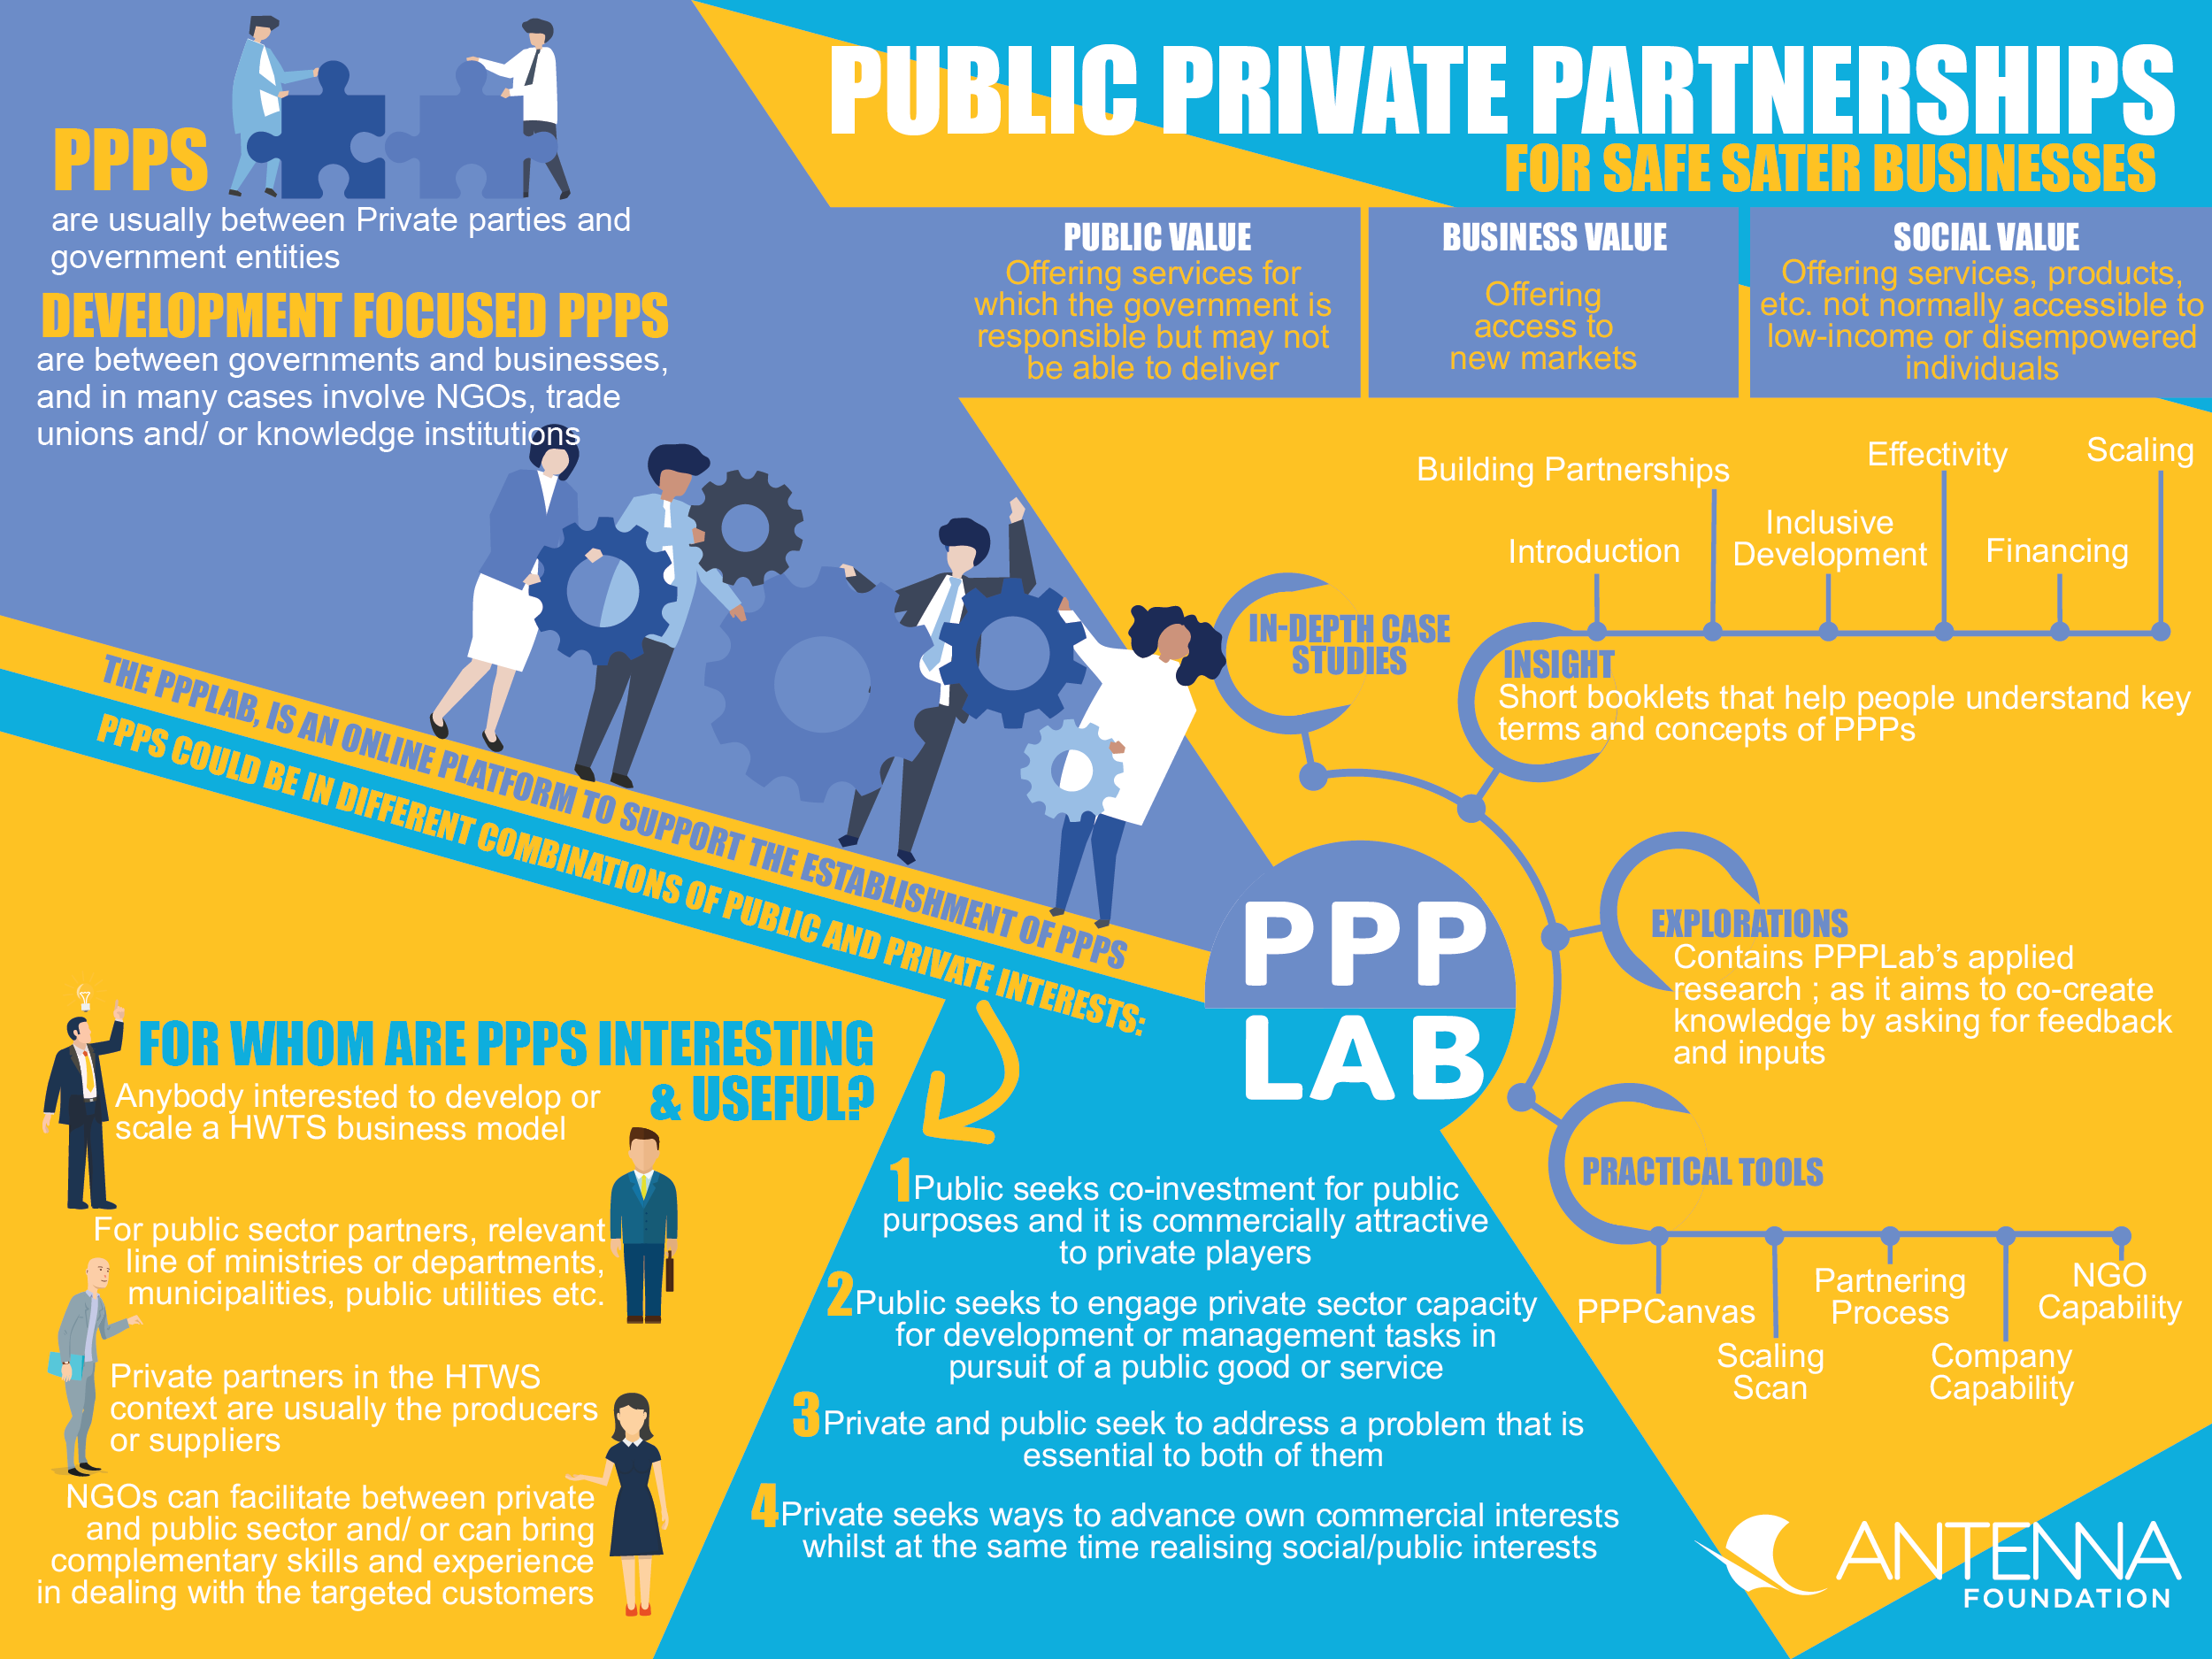 Public Private Partnerships For Safe Water Businesses Sswm Find Tools For Sustainable Sanitation And Water Management